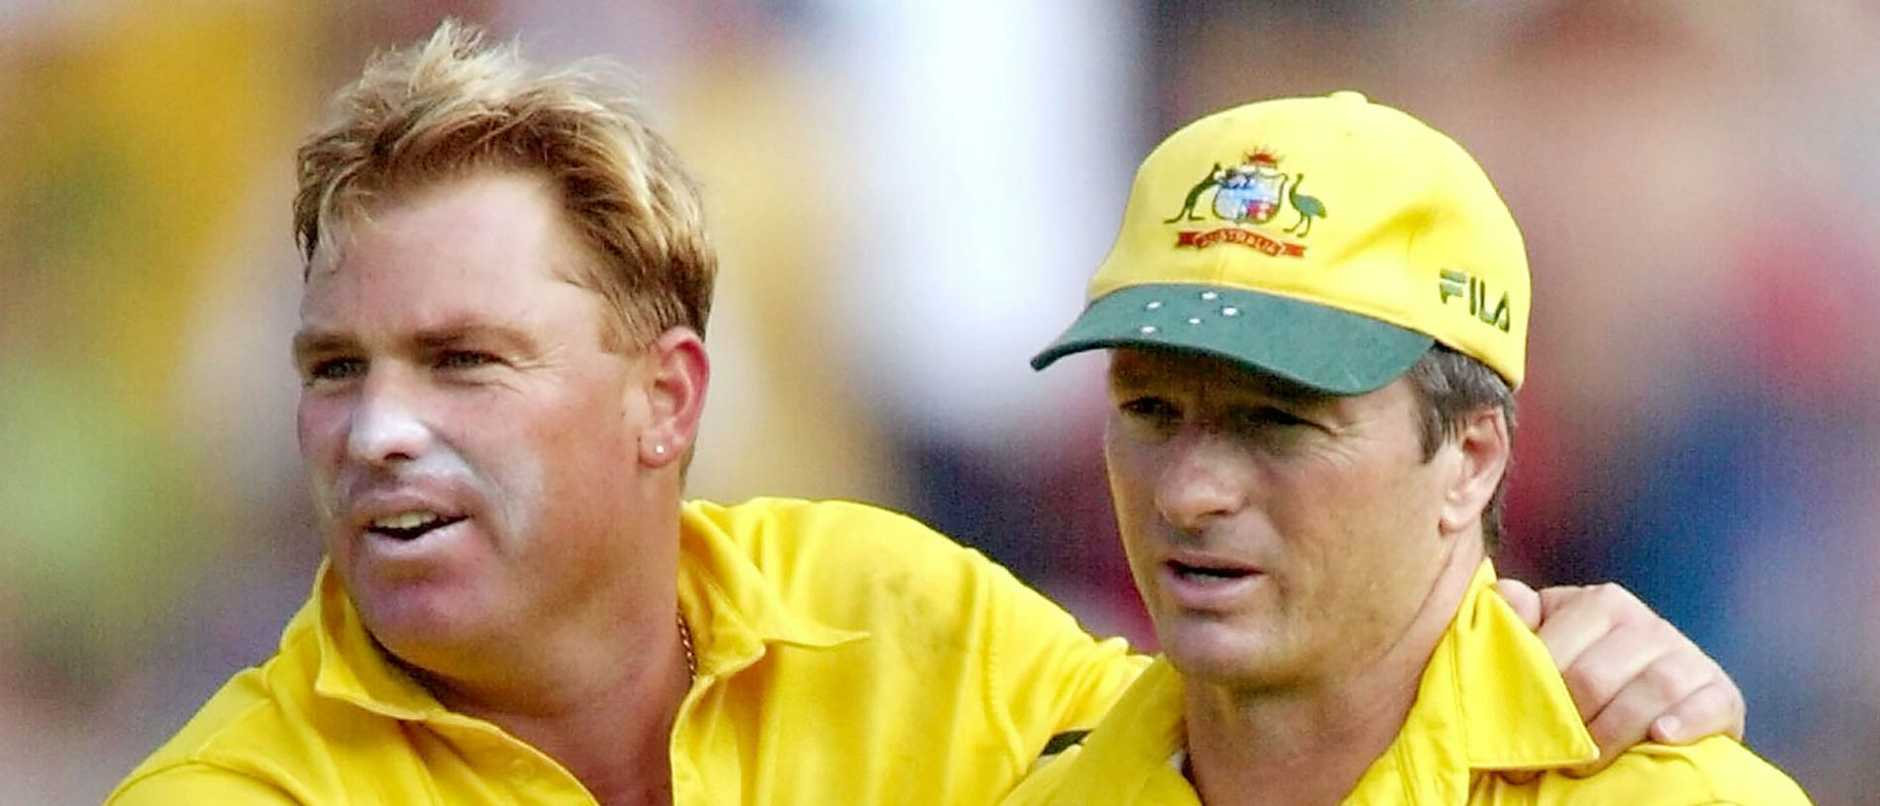 A one-hour montage of Steve Waugh run outs has reignited a long-running feud between two of Australia's greatest cricketers.